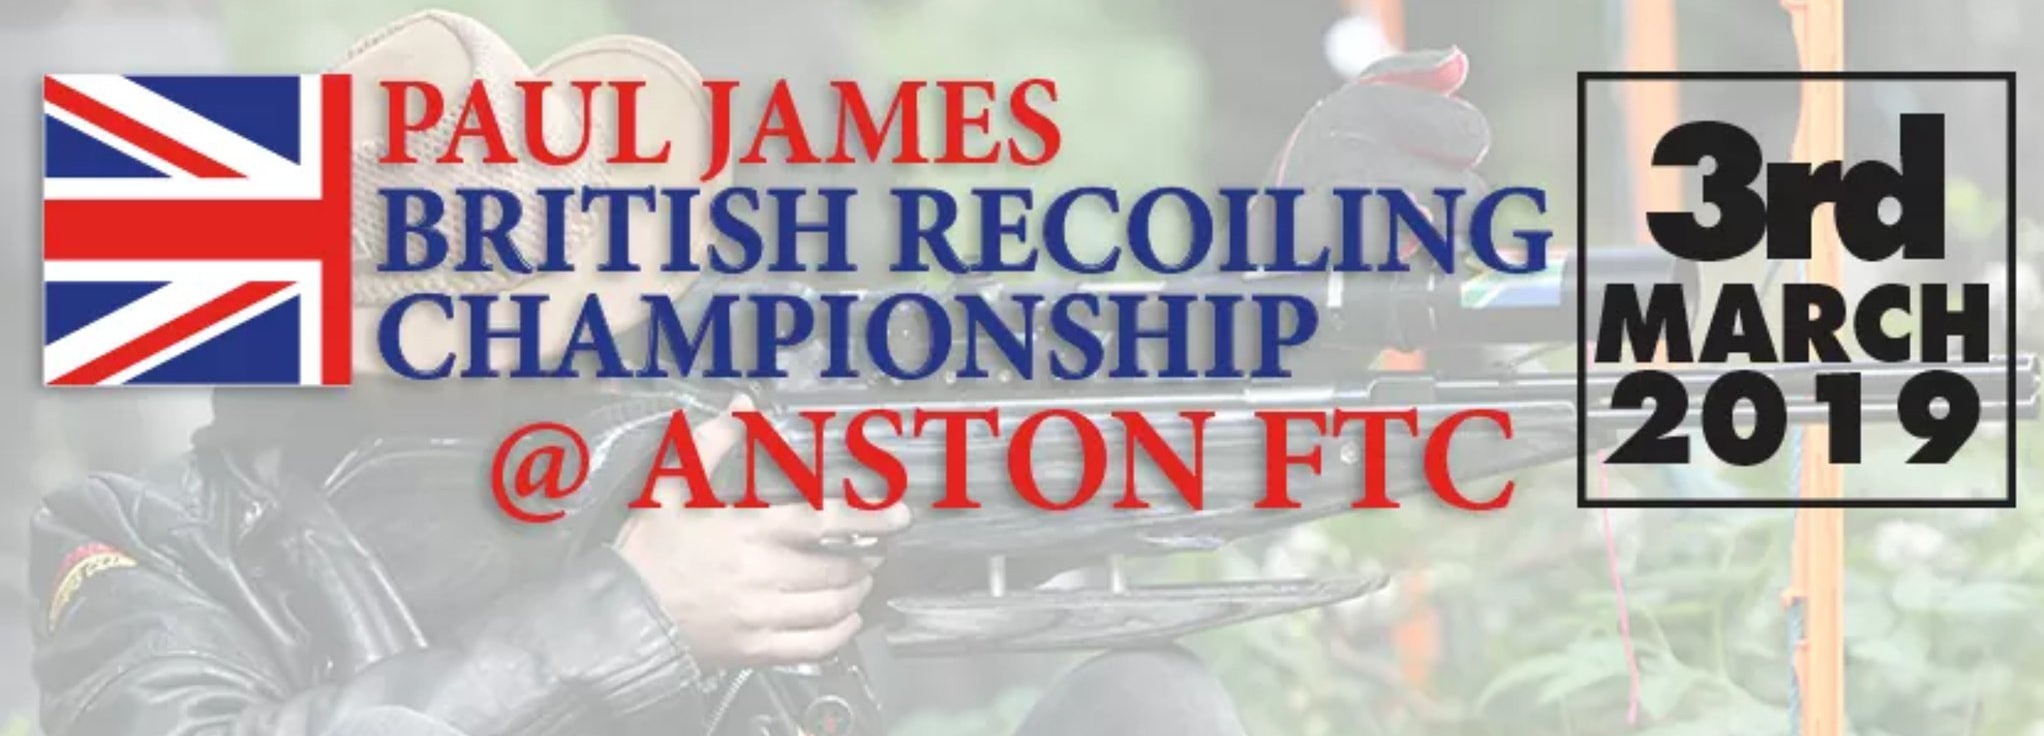 Paul James British Recoiling Championship